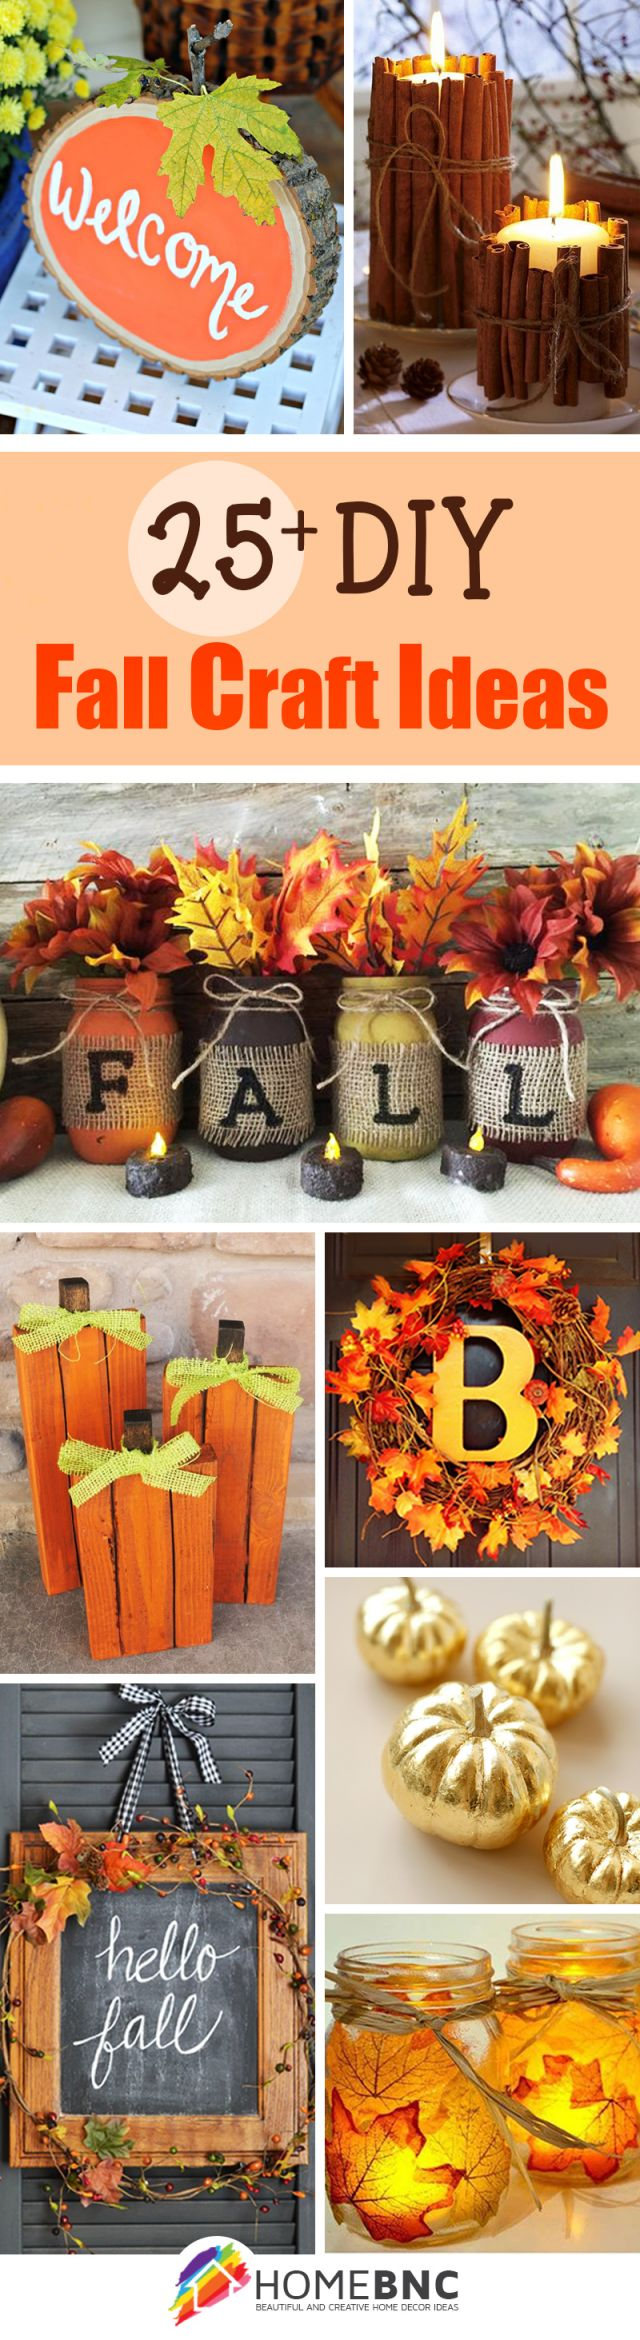 Awesome homemade fall decorations